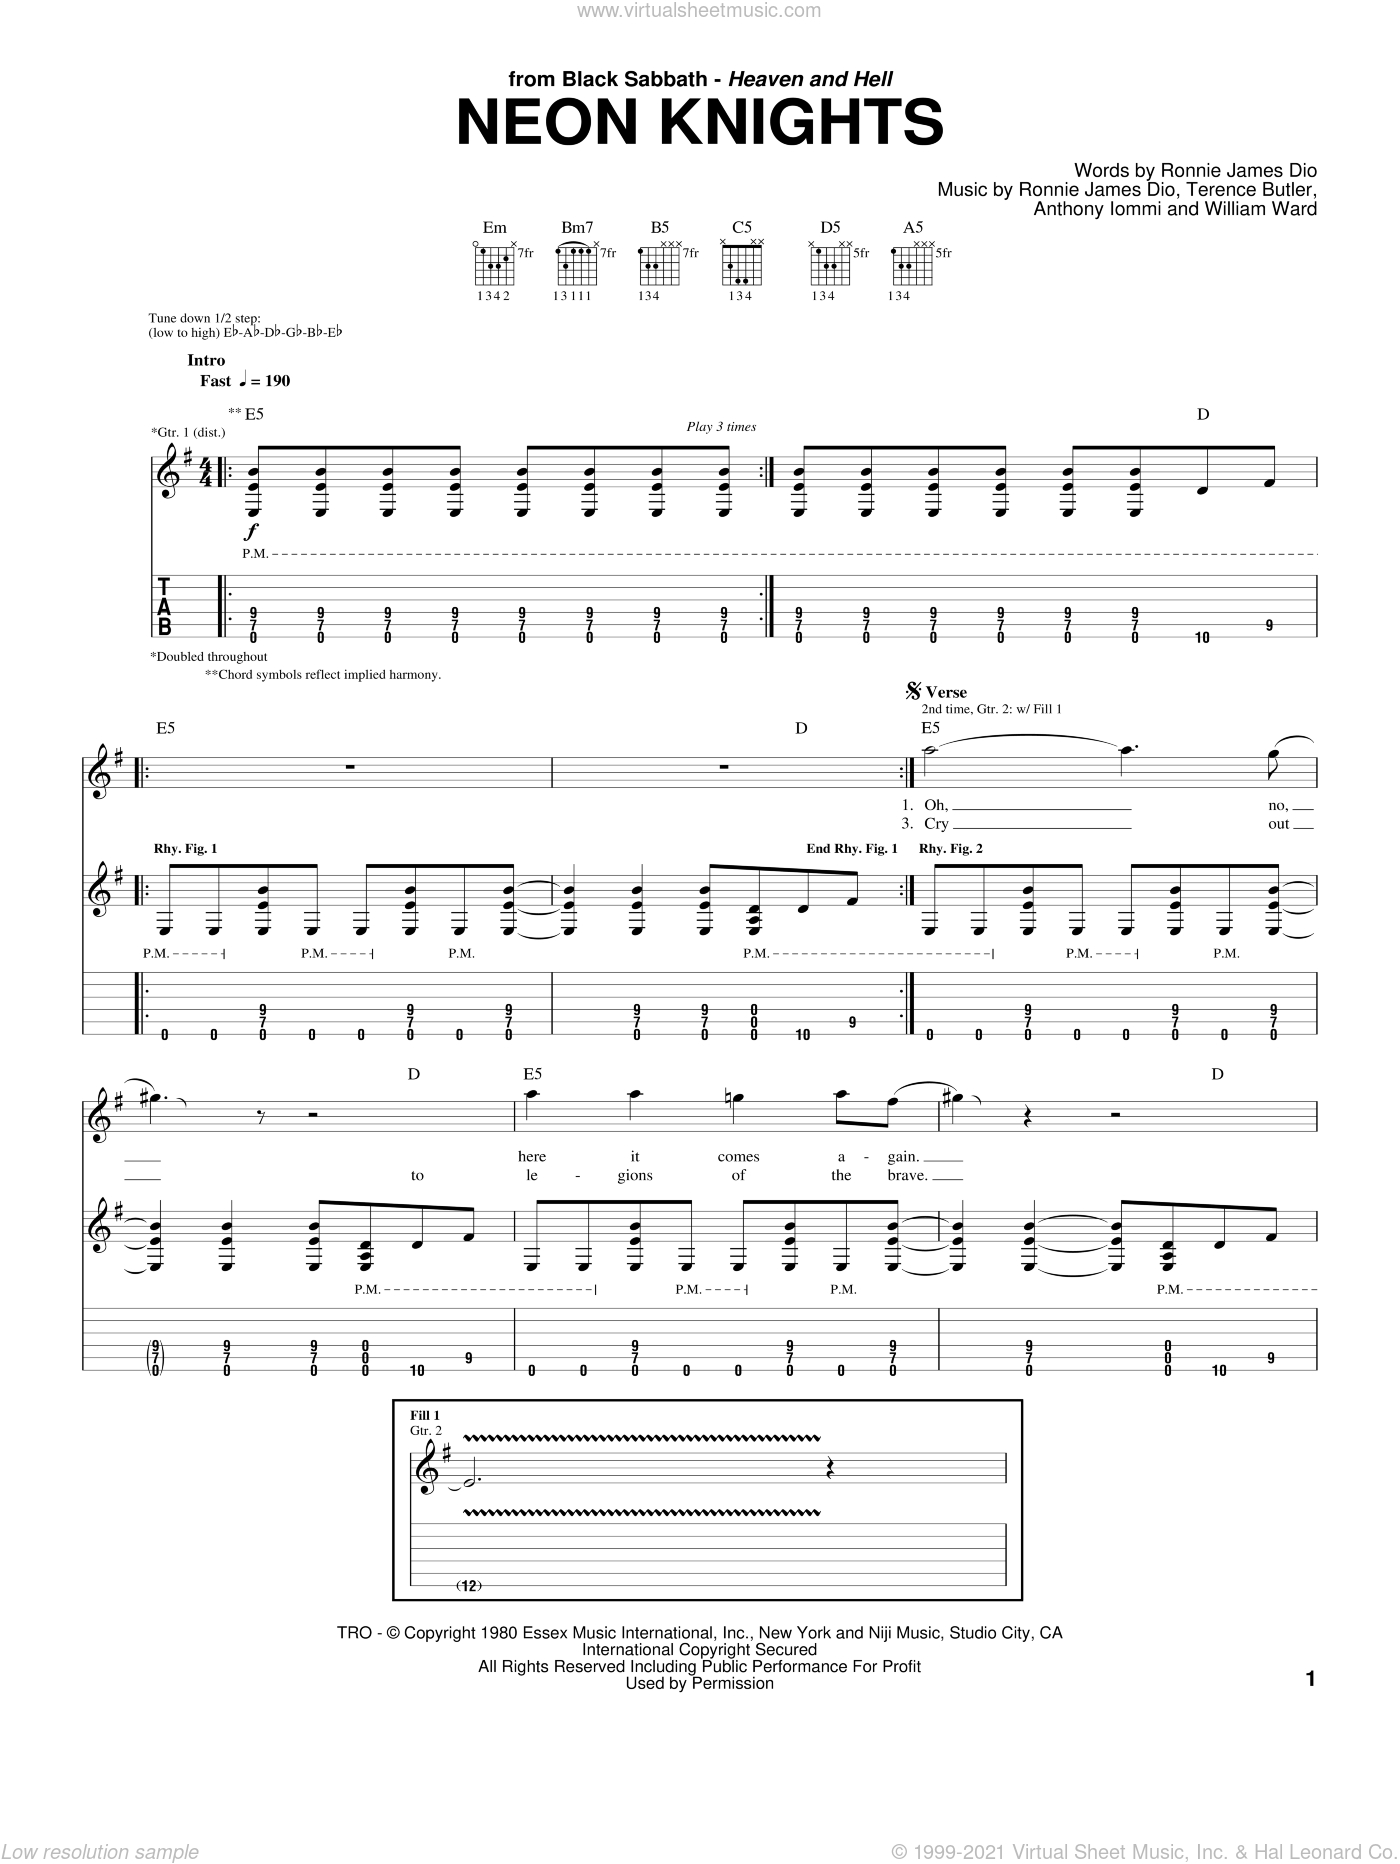 Neon Knights sheet music for guitar (tablature) by Black Sabbath, Dio, Anthony Iommi, Ronnie James Dio, Terence Butler and William Ward, intermediate skill level